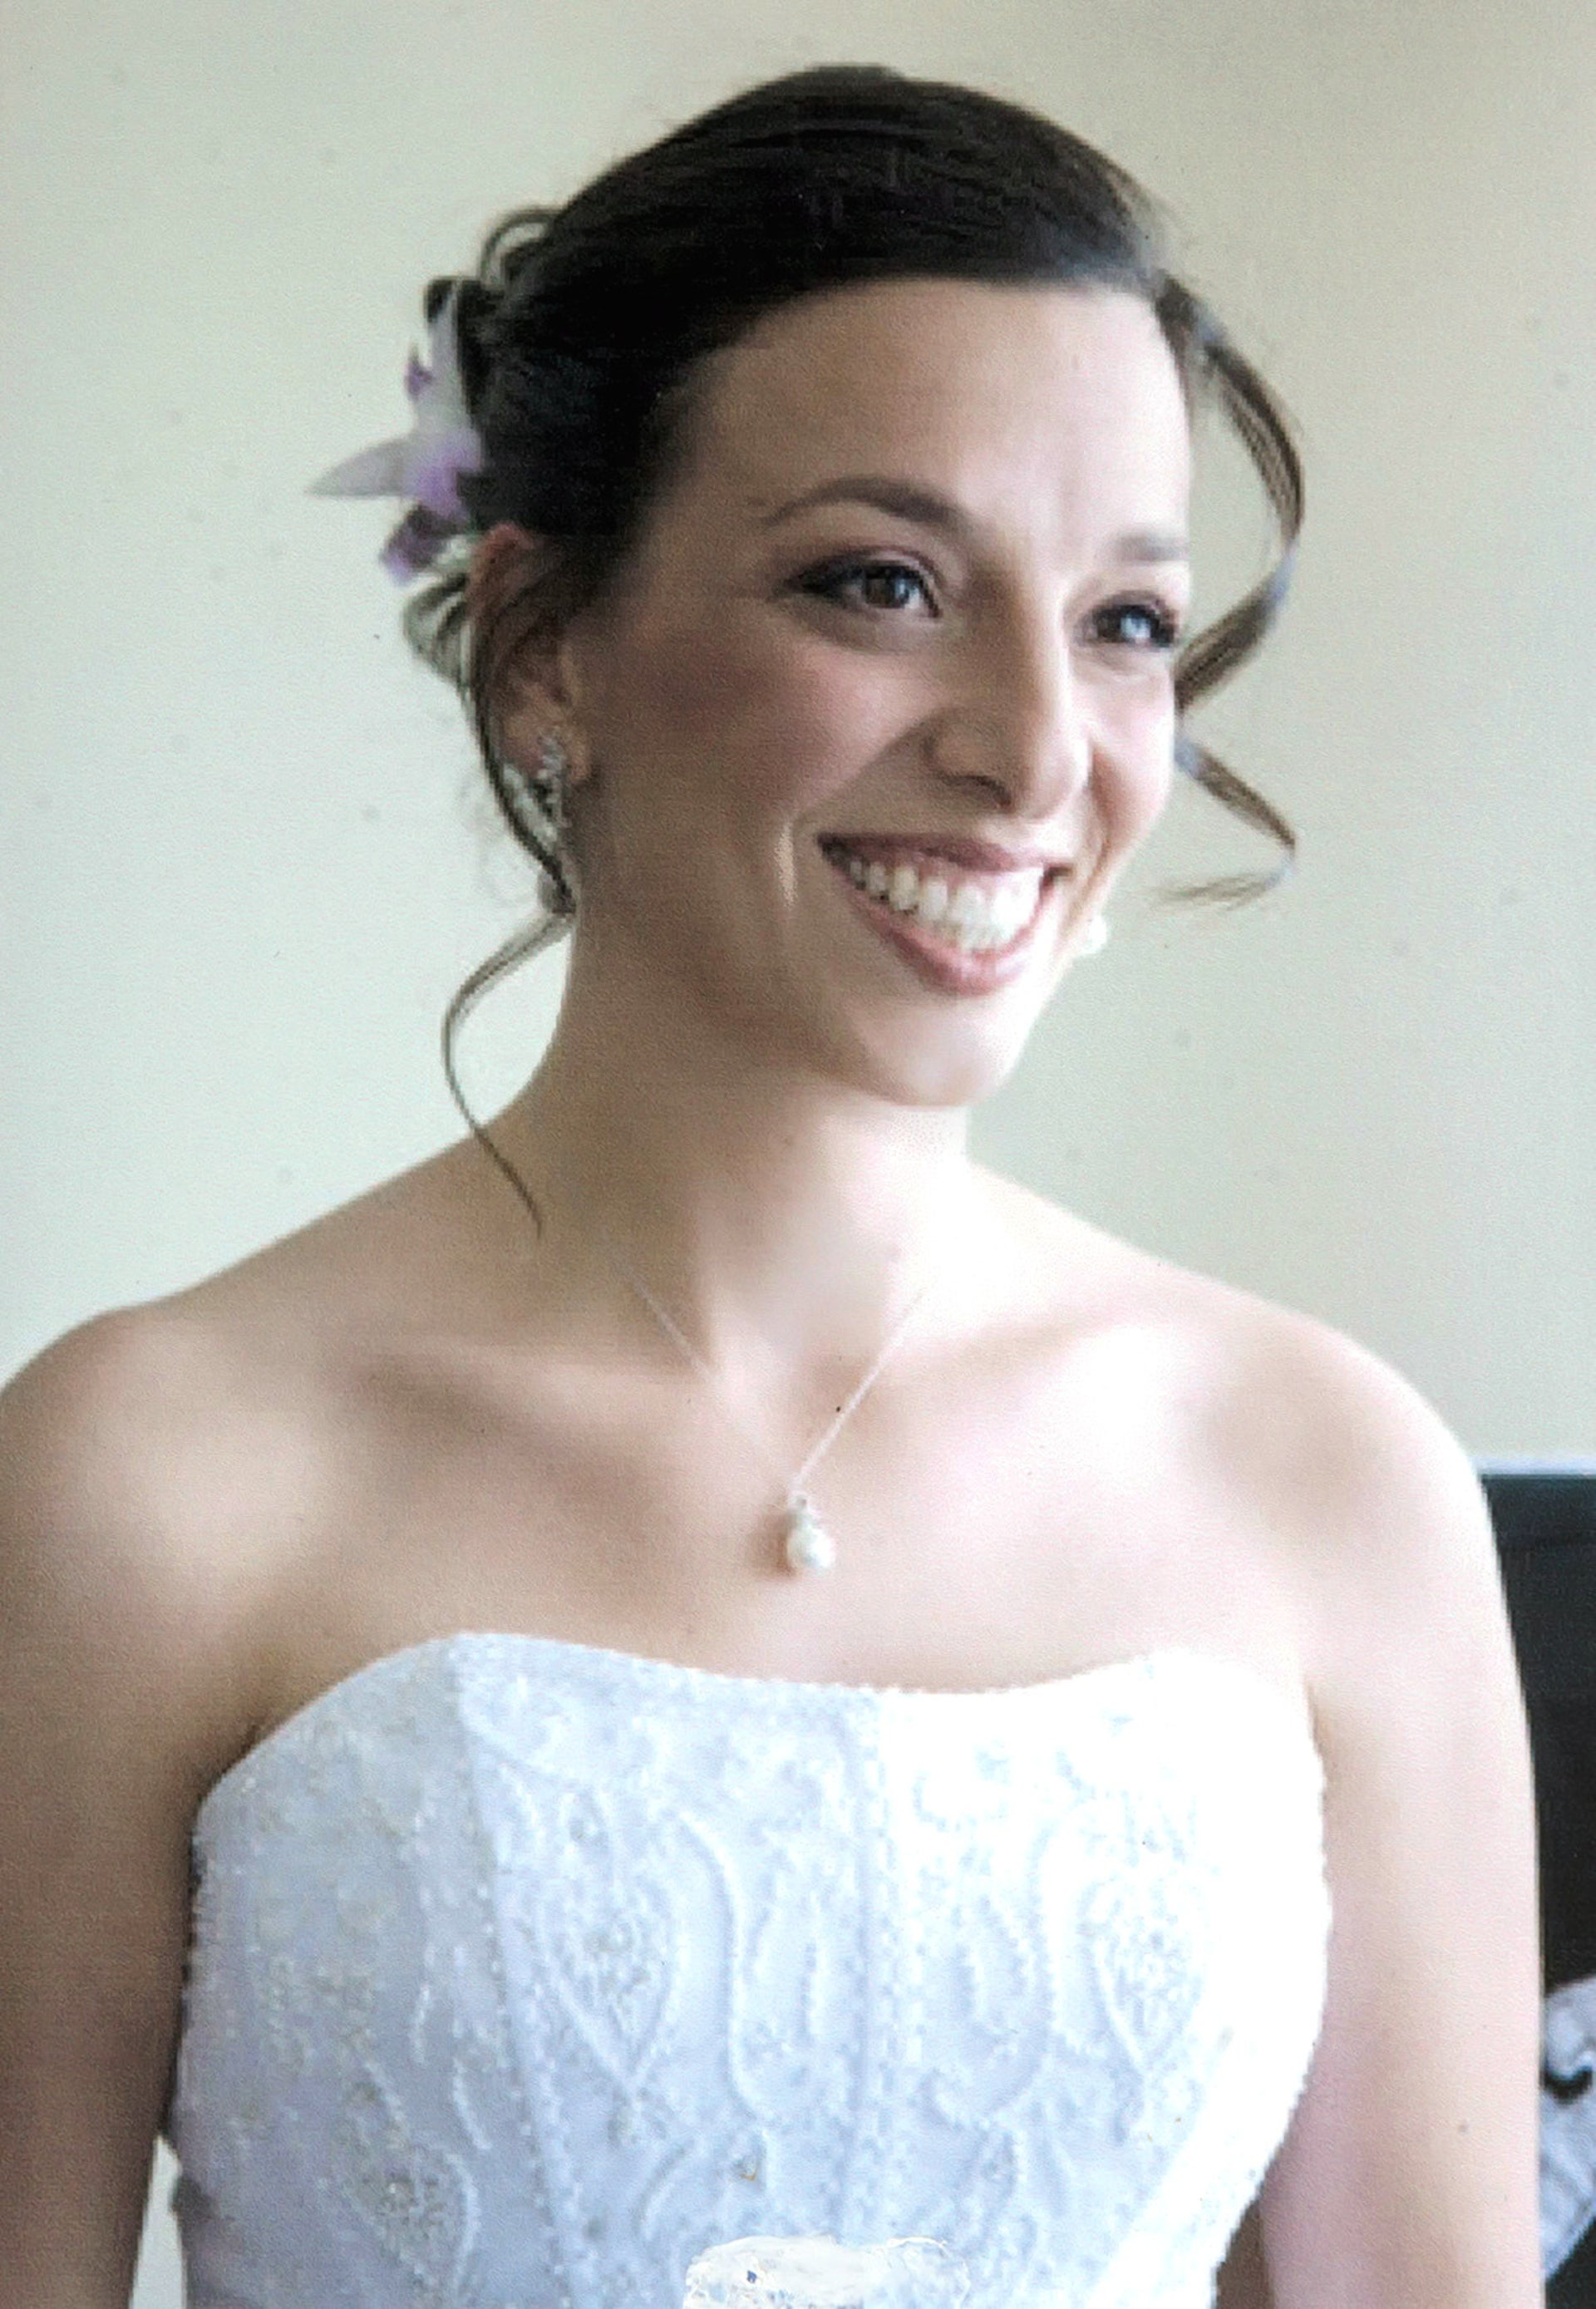 Sharon Stern on her wedding day.